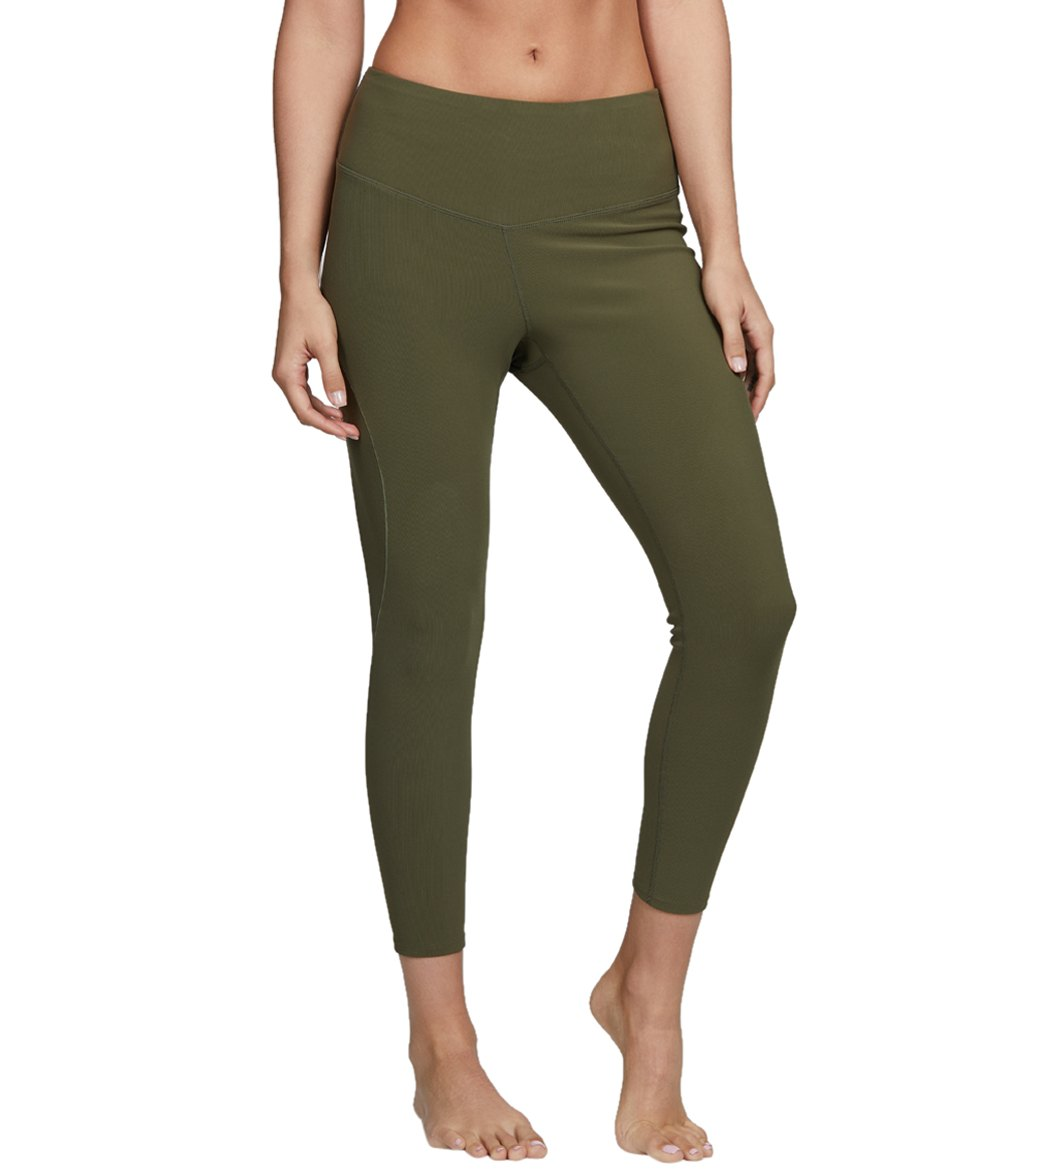 b35f1996481c Free People High Waisted Formation Yoga Leggings at YogaOutlet.com - Free  Shipping